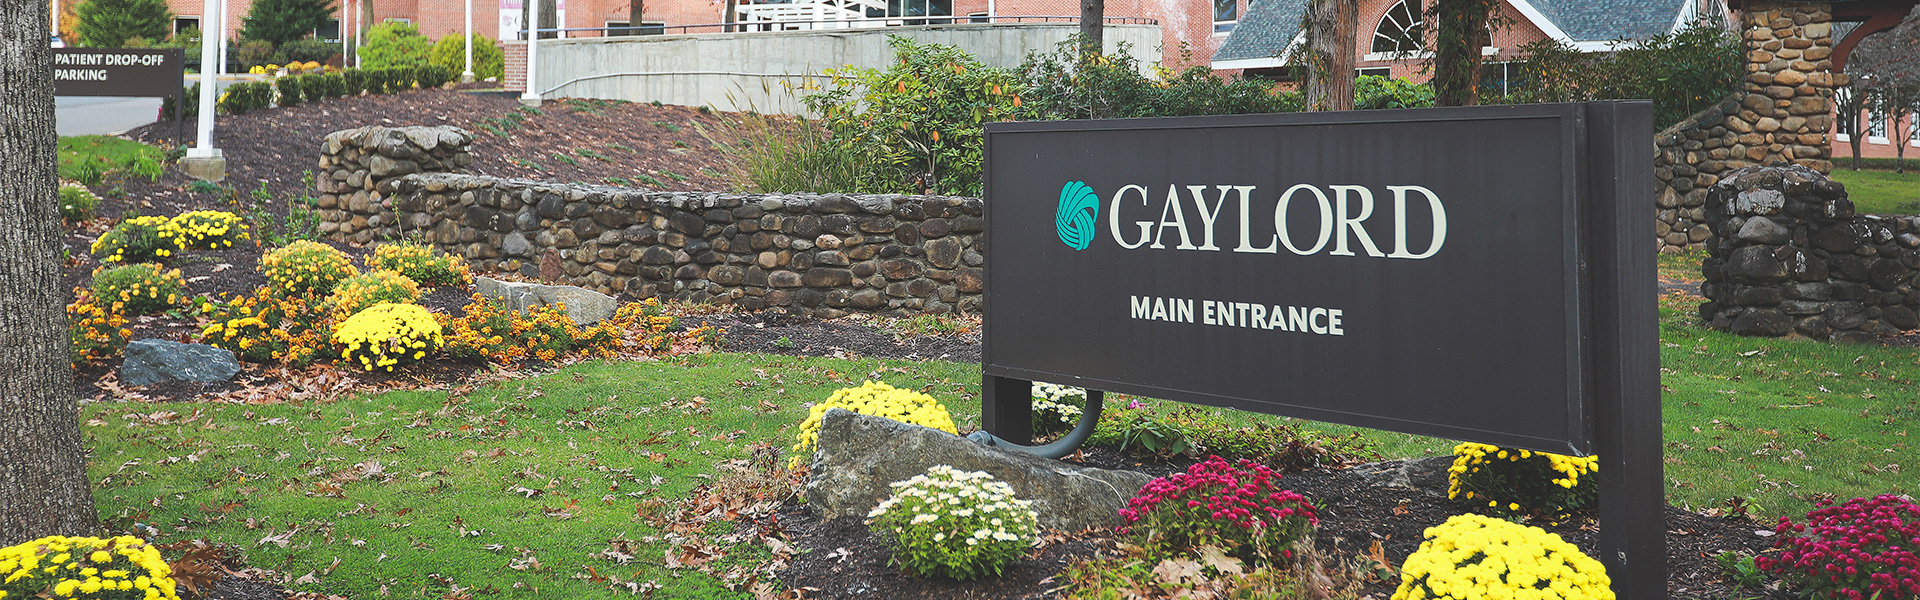 Gaylord Entrance Sign